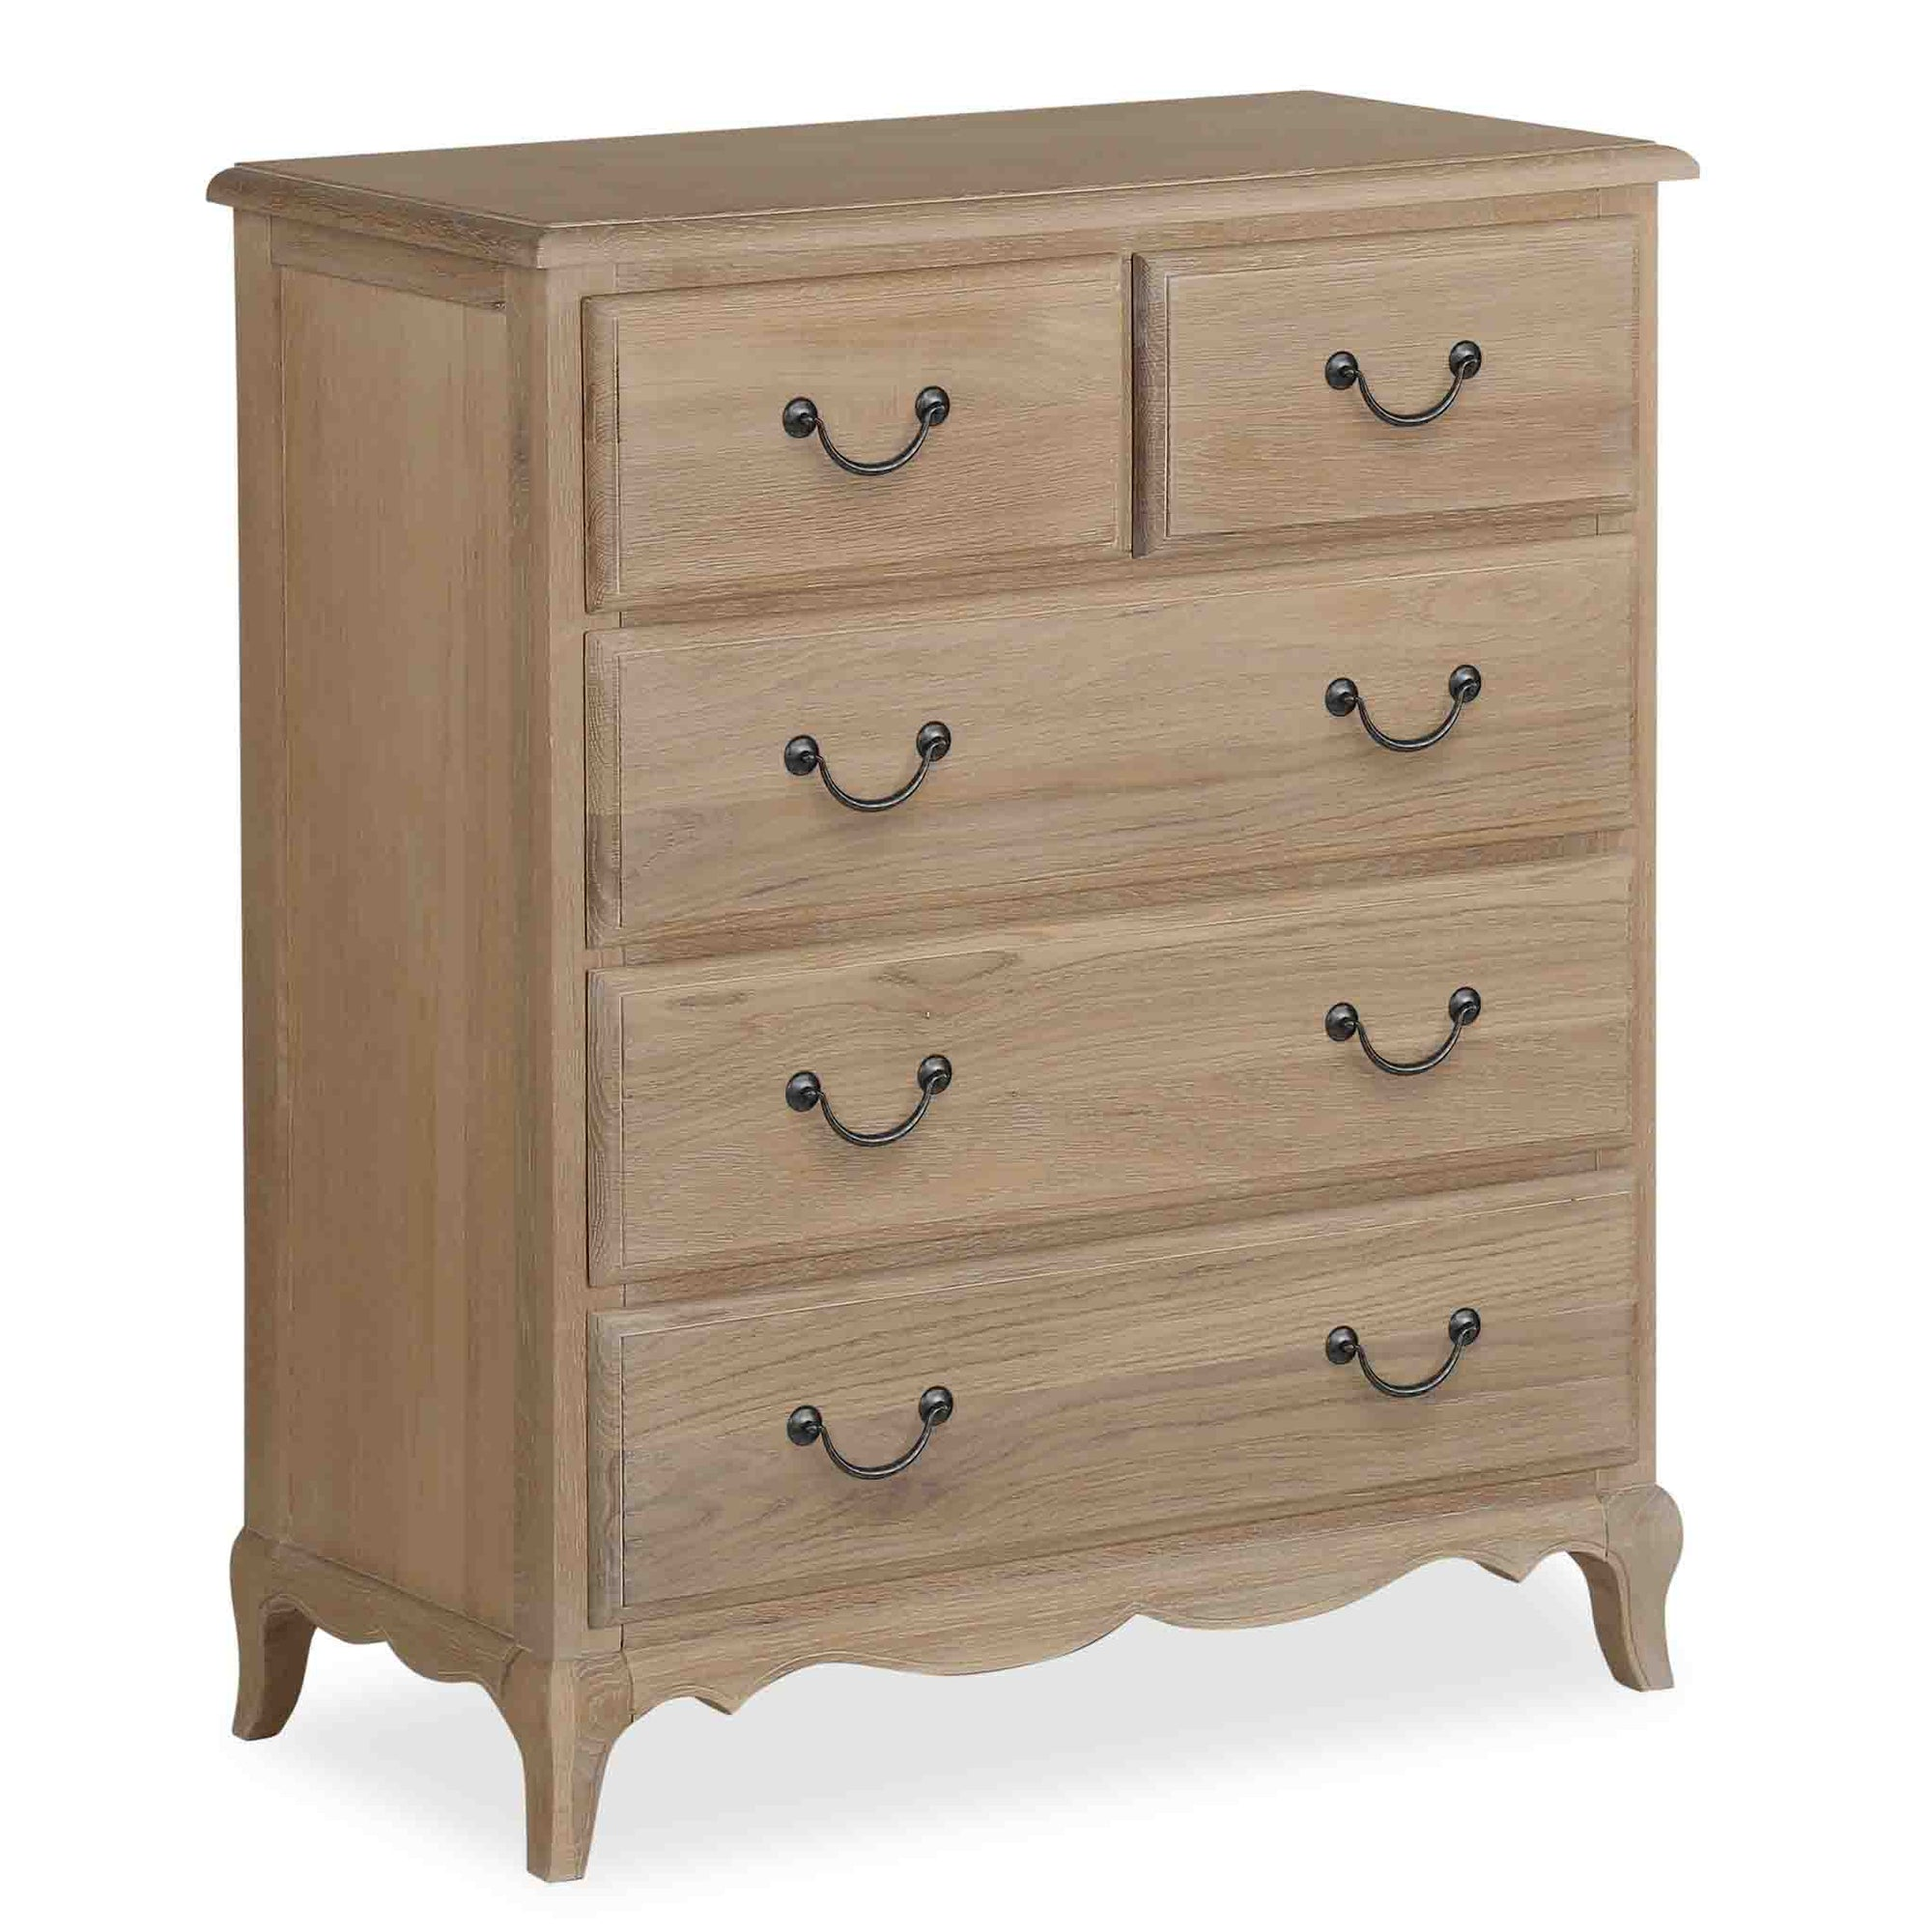 Harrogate Oak 2 over 3 Chest of Drawers from Roseland Furniture